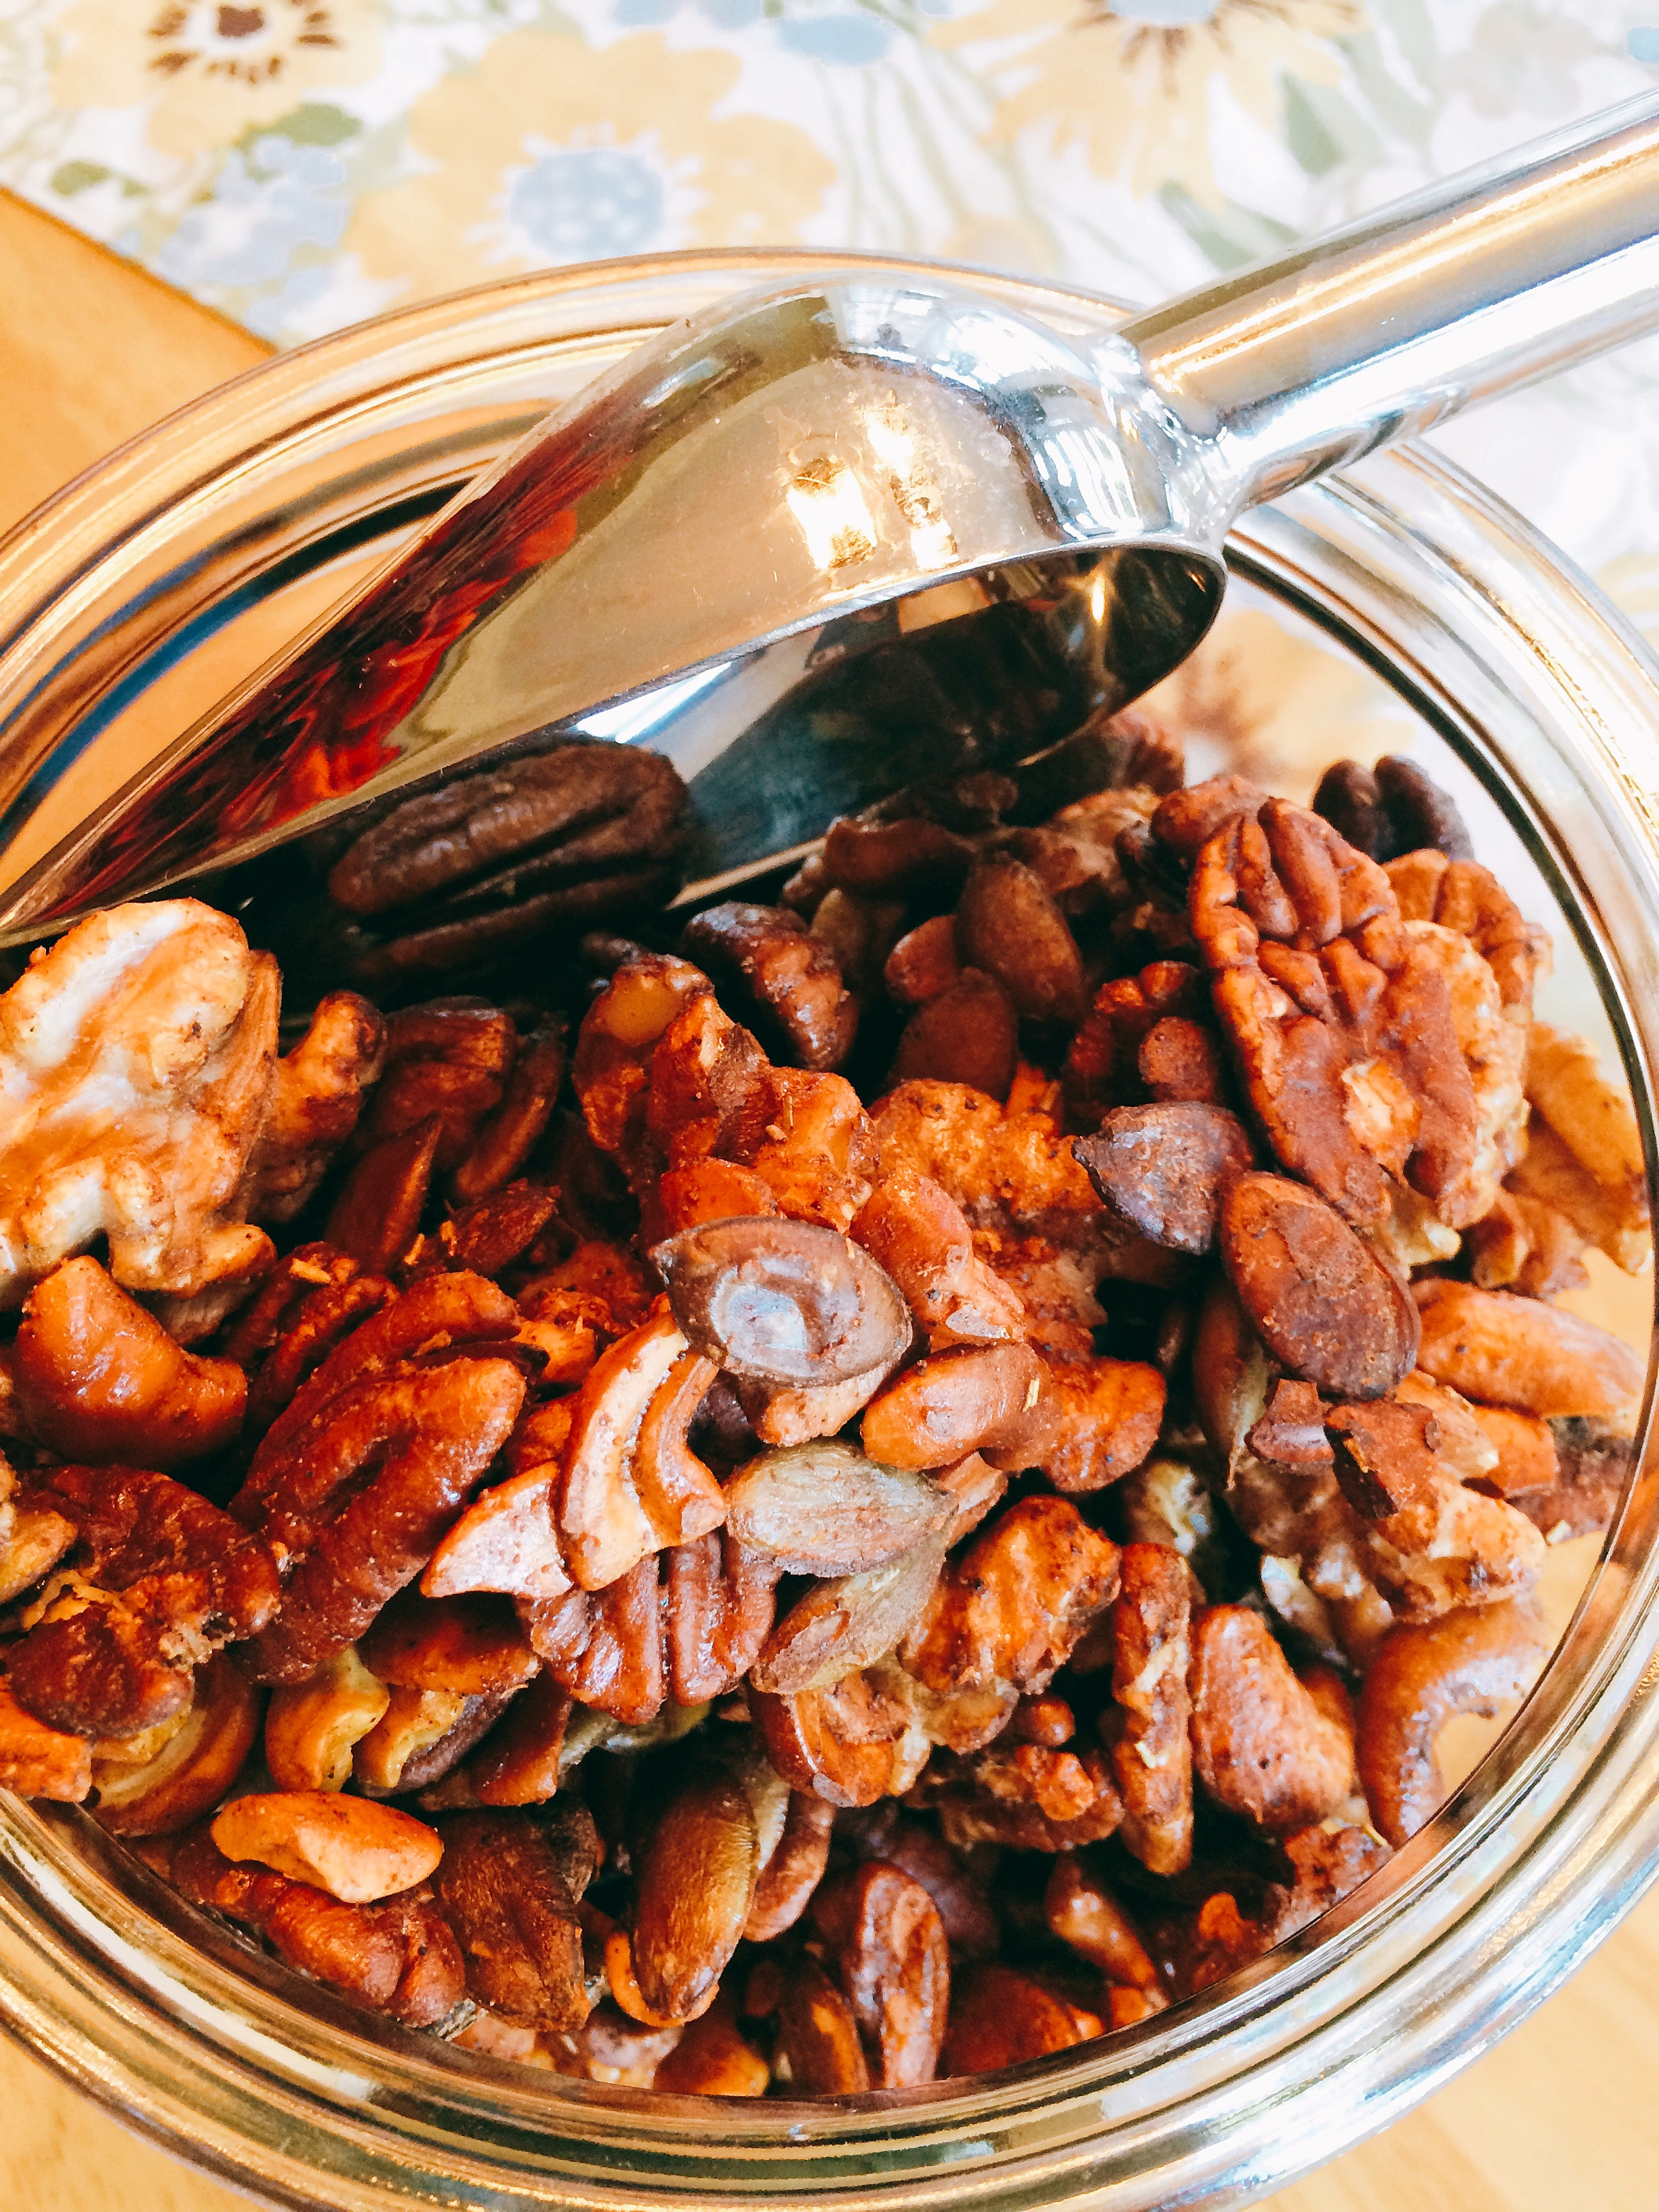 Delicious Spiced Nuts